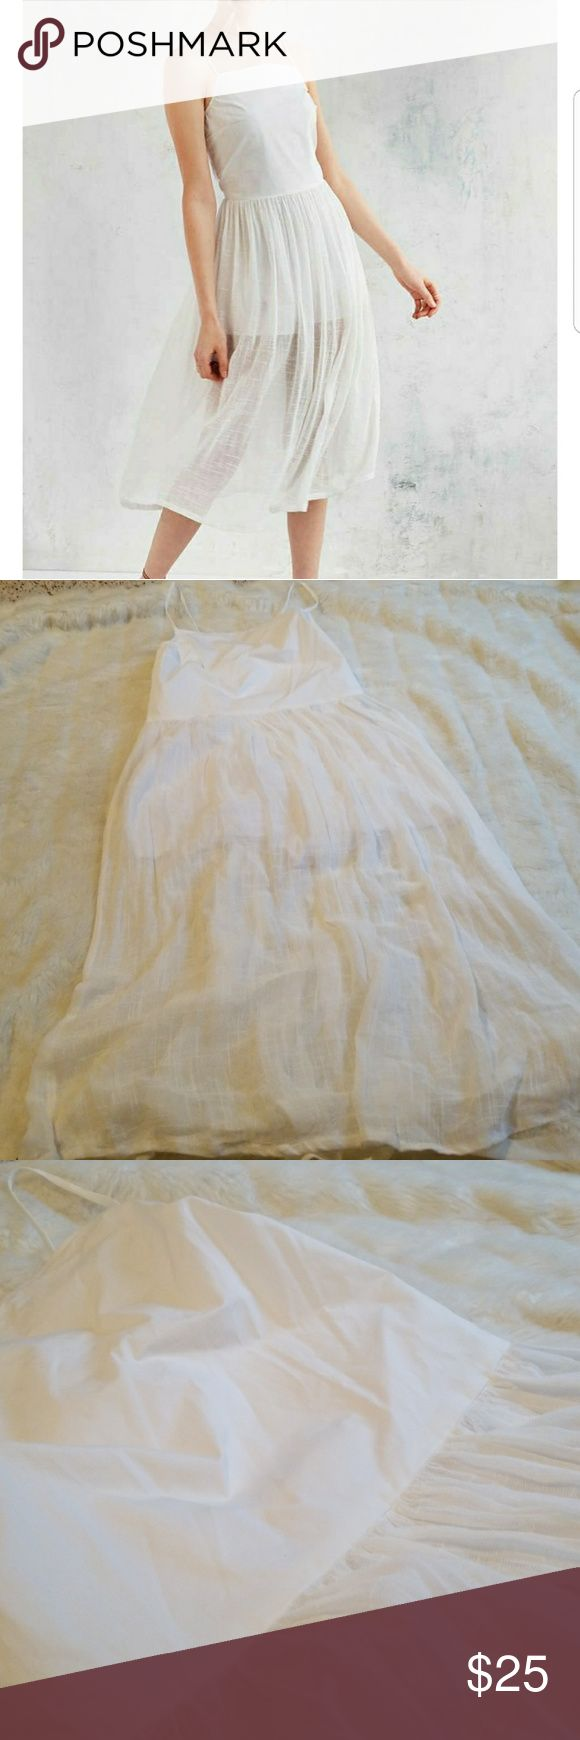 Objects without Meaning for Urban Outfitters White linen and gauze dress by Objects Without Meaning for Urban Outfitters. Romper lining under gauze skirt. Crisp linen bodice, straps & zipper closure on back. Like new condition. Urban Outfitters Dresses Midi